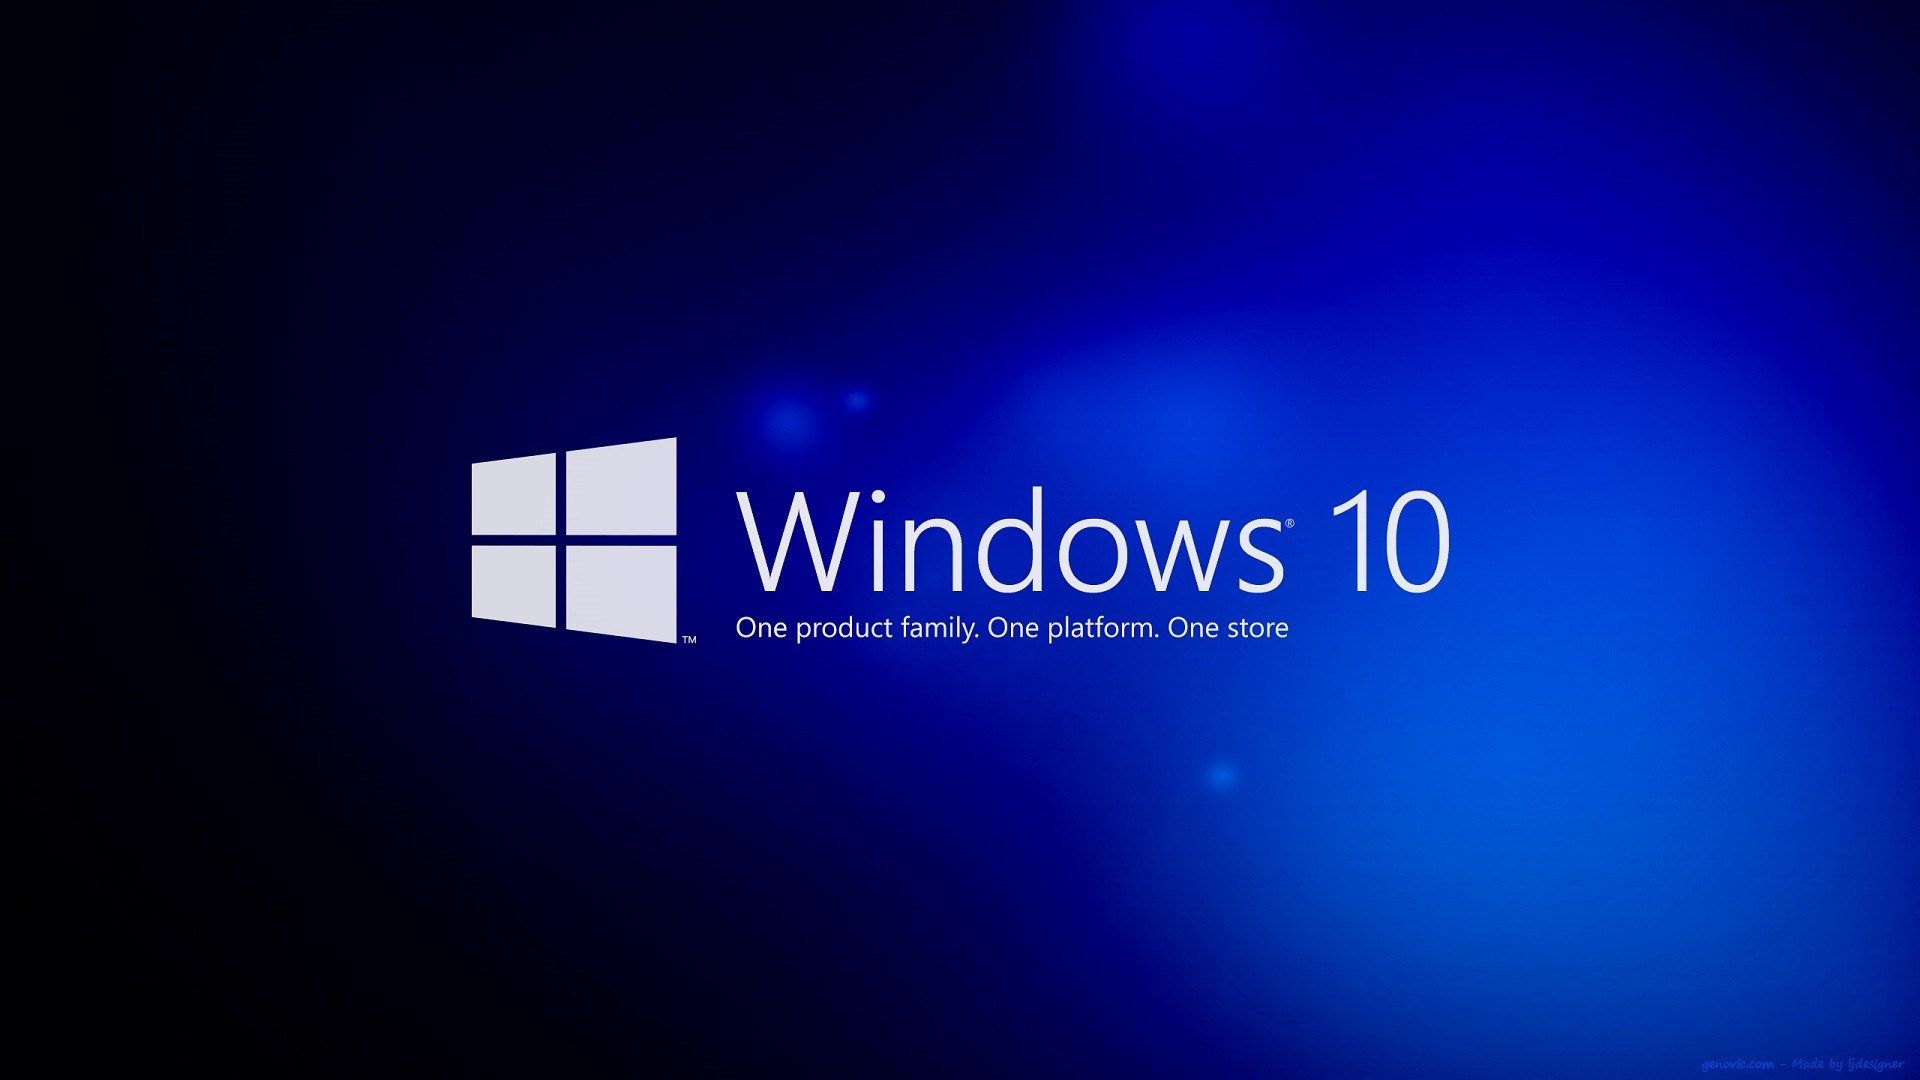 Windows 10 Wallpapers Hd The Cool Art Windows 10 Download Windows 10 Microsoft Windows 10